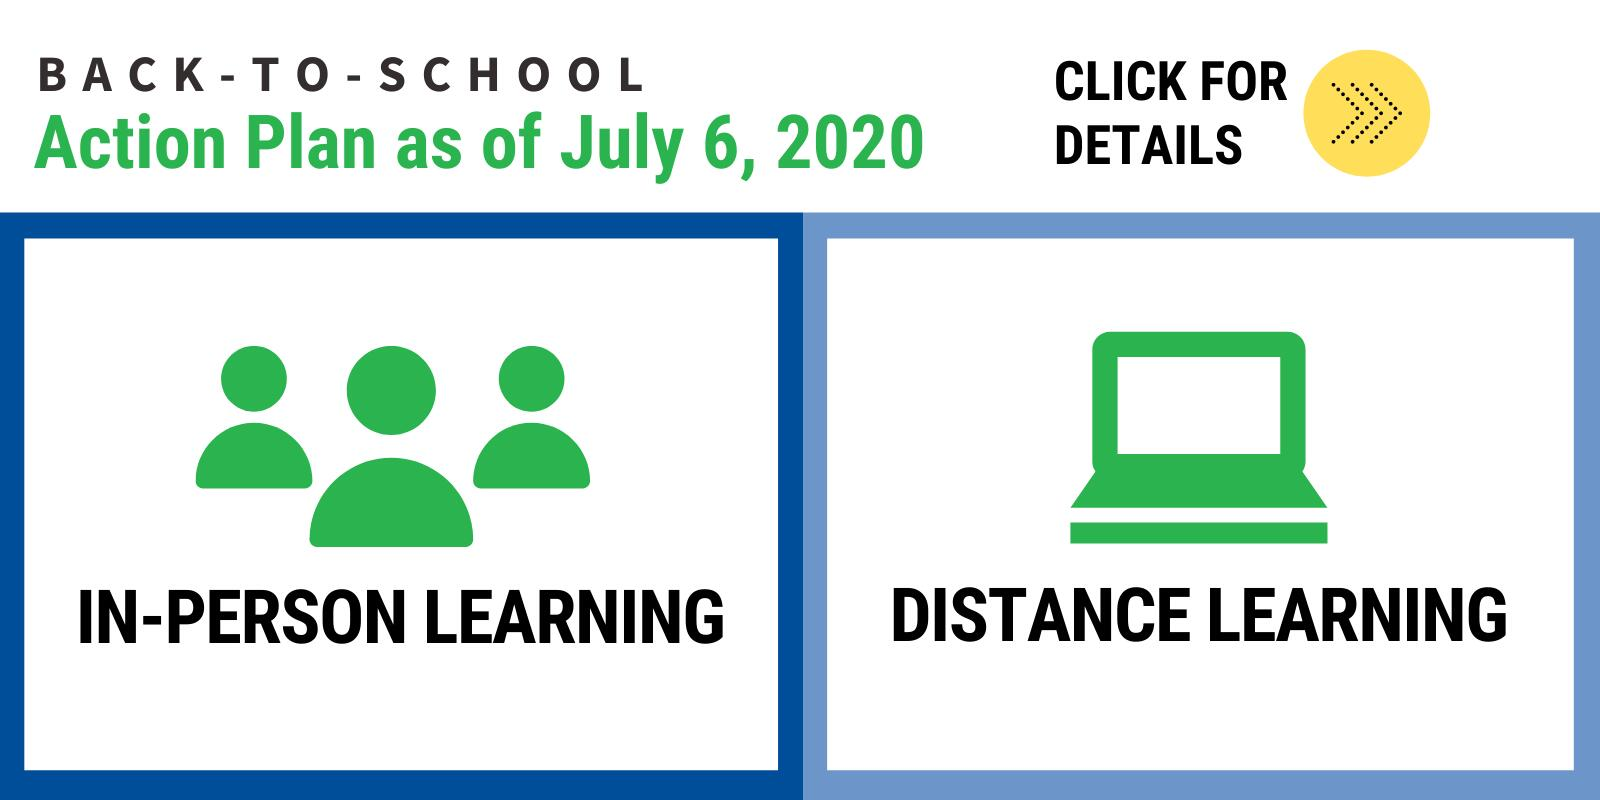 Click to see back-to-school plans for the 20-21 school year.